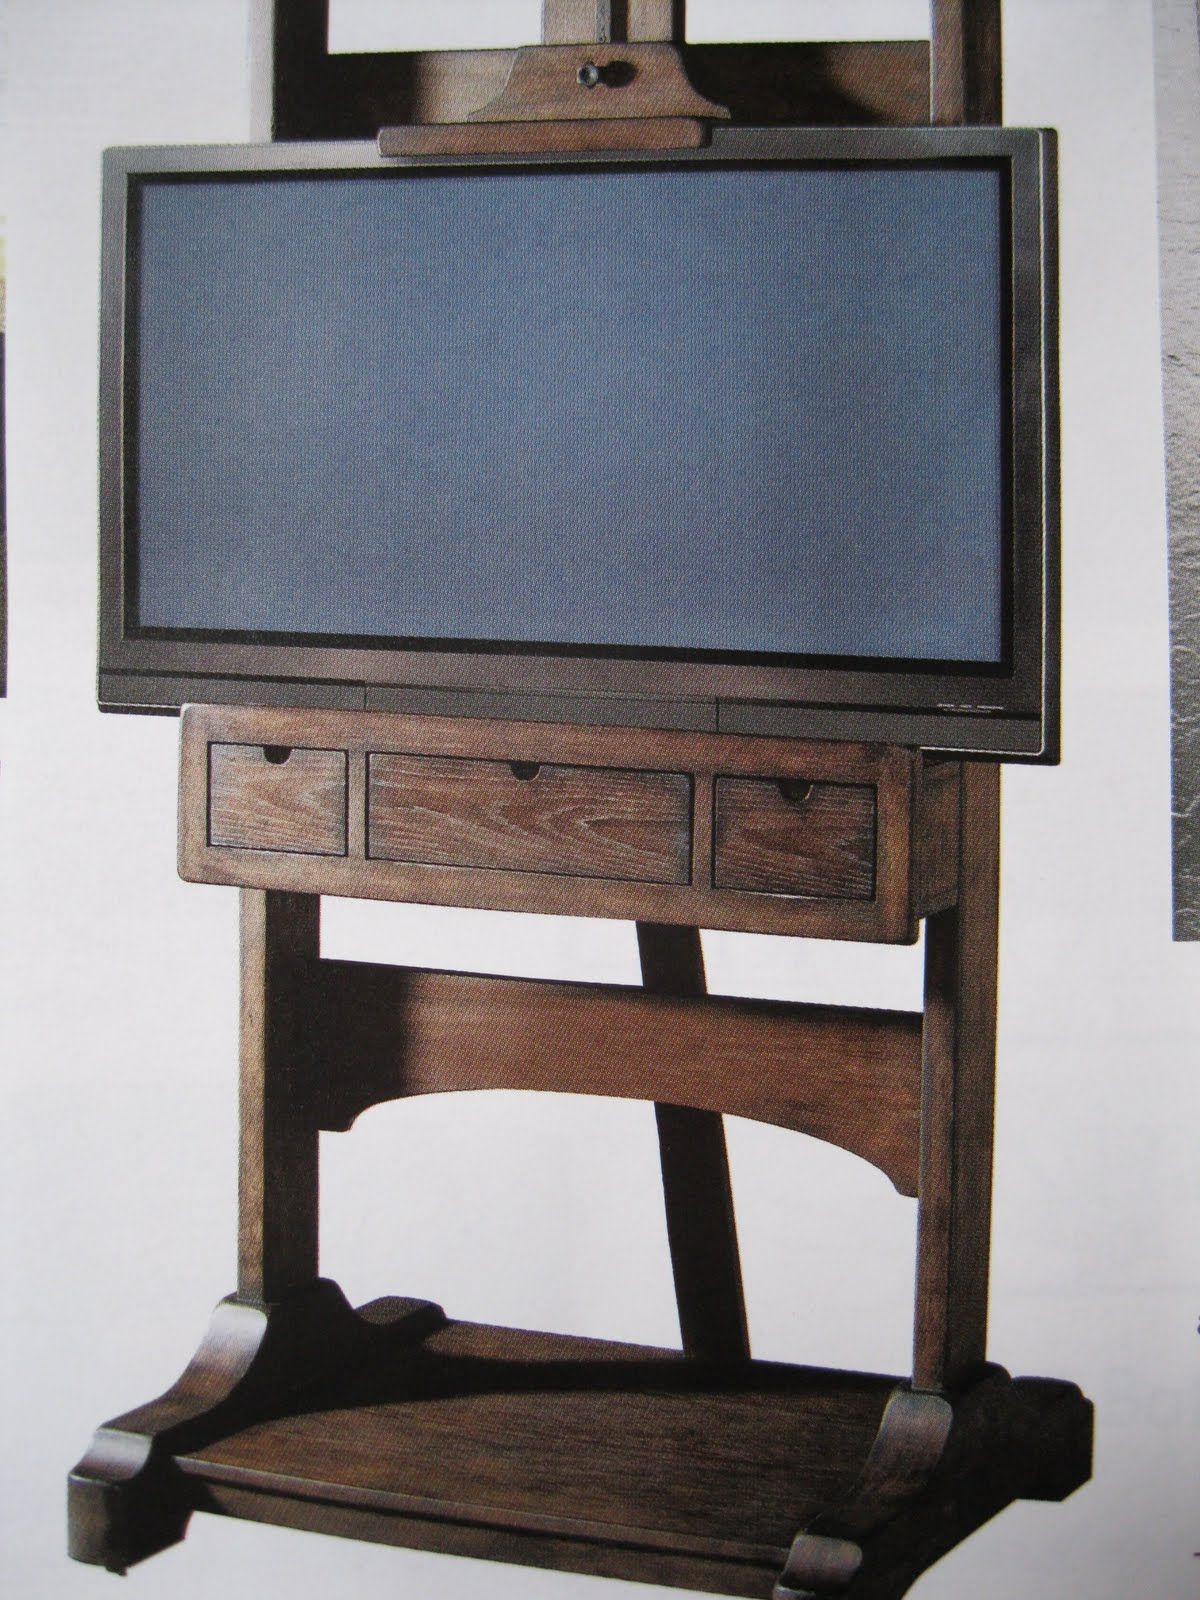 Easel Tv Stands For Flat Screens With Current Television Easle (View 2 of 20)